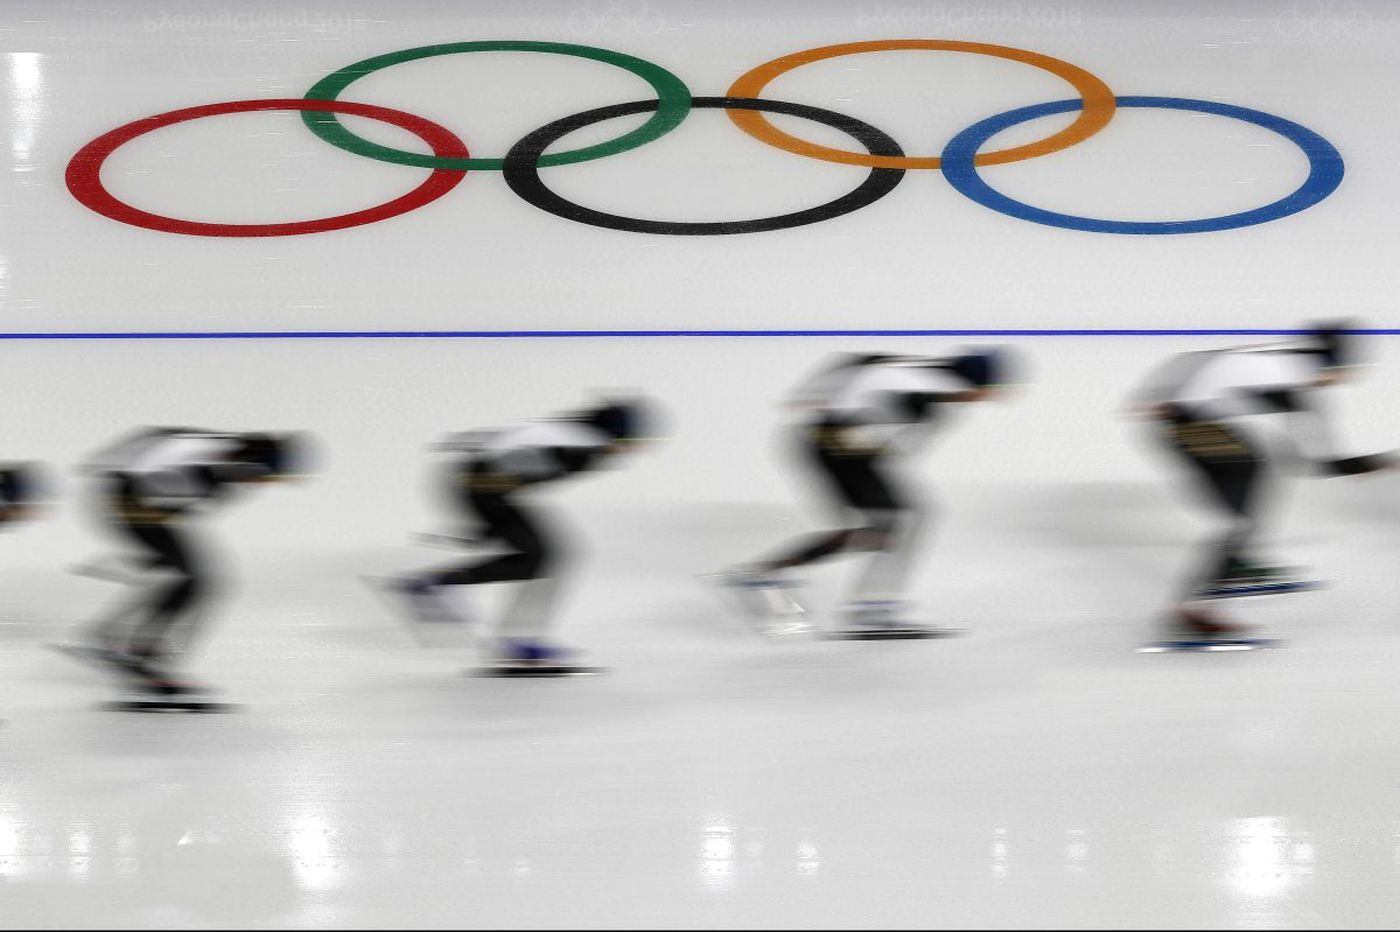 Winter Olympics 2018 TV schedule: Saturday, February 10, 2018